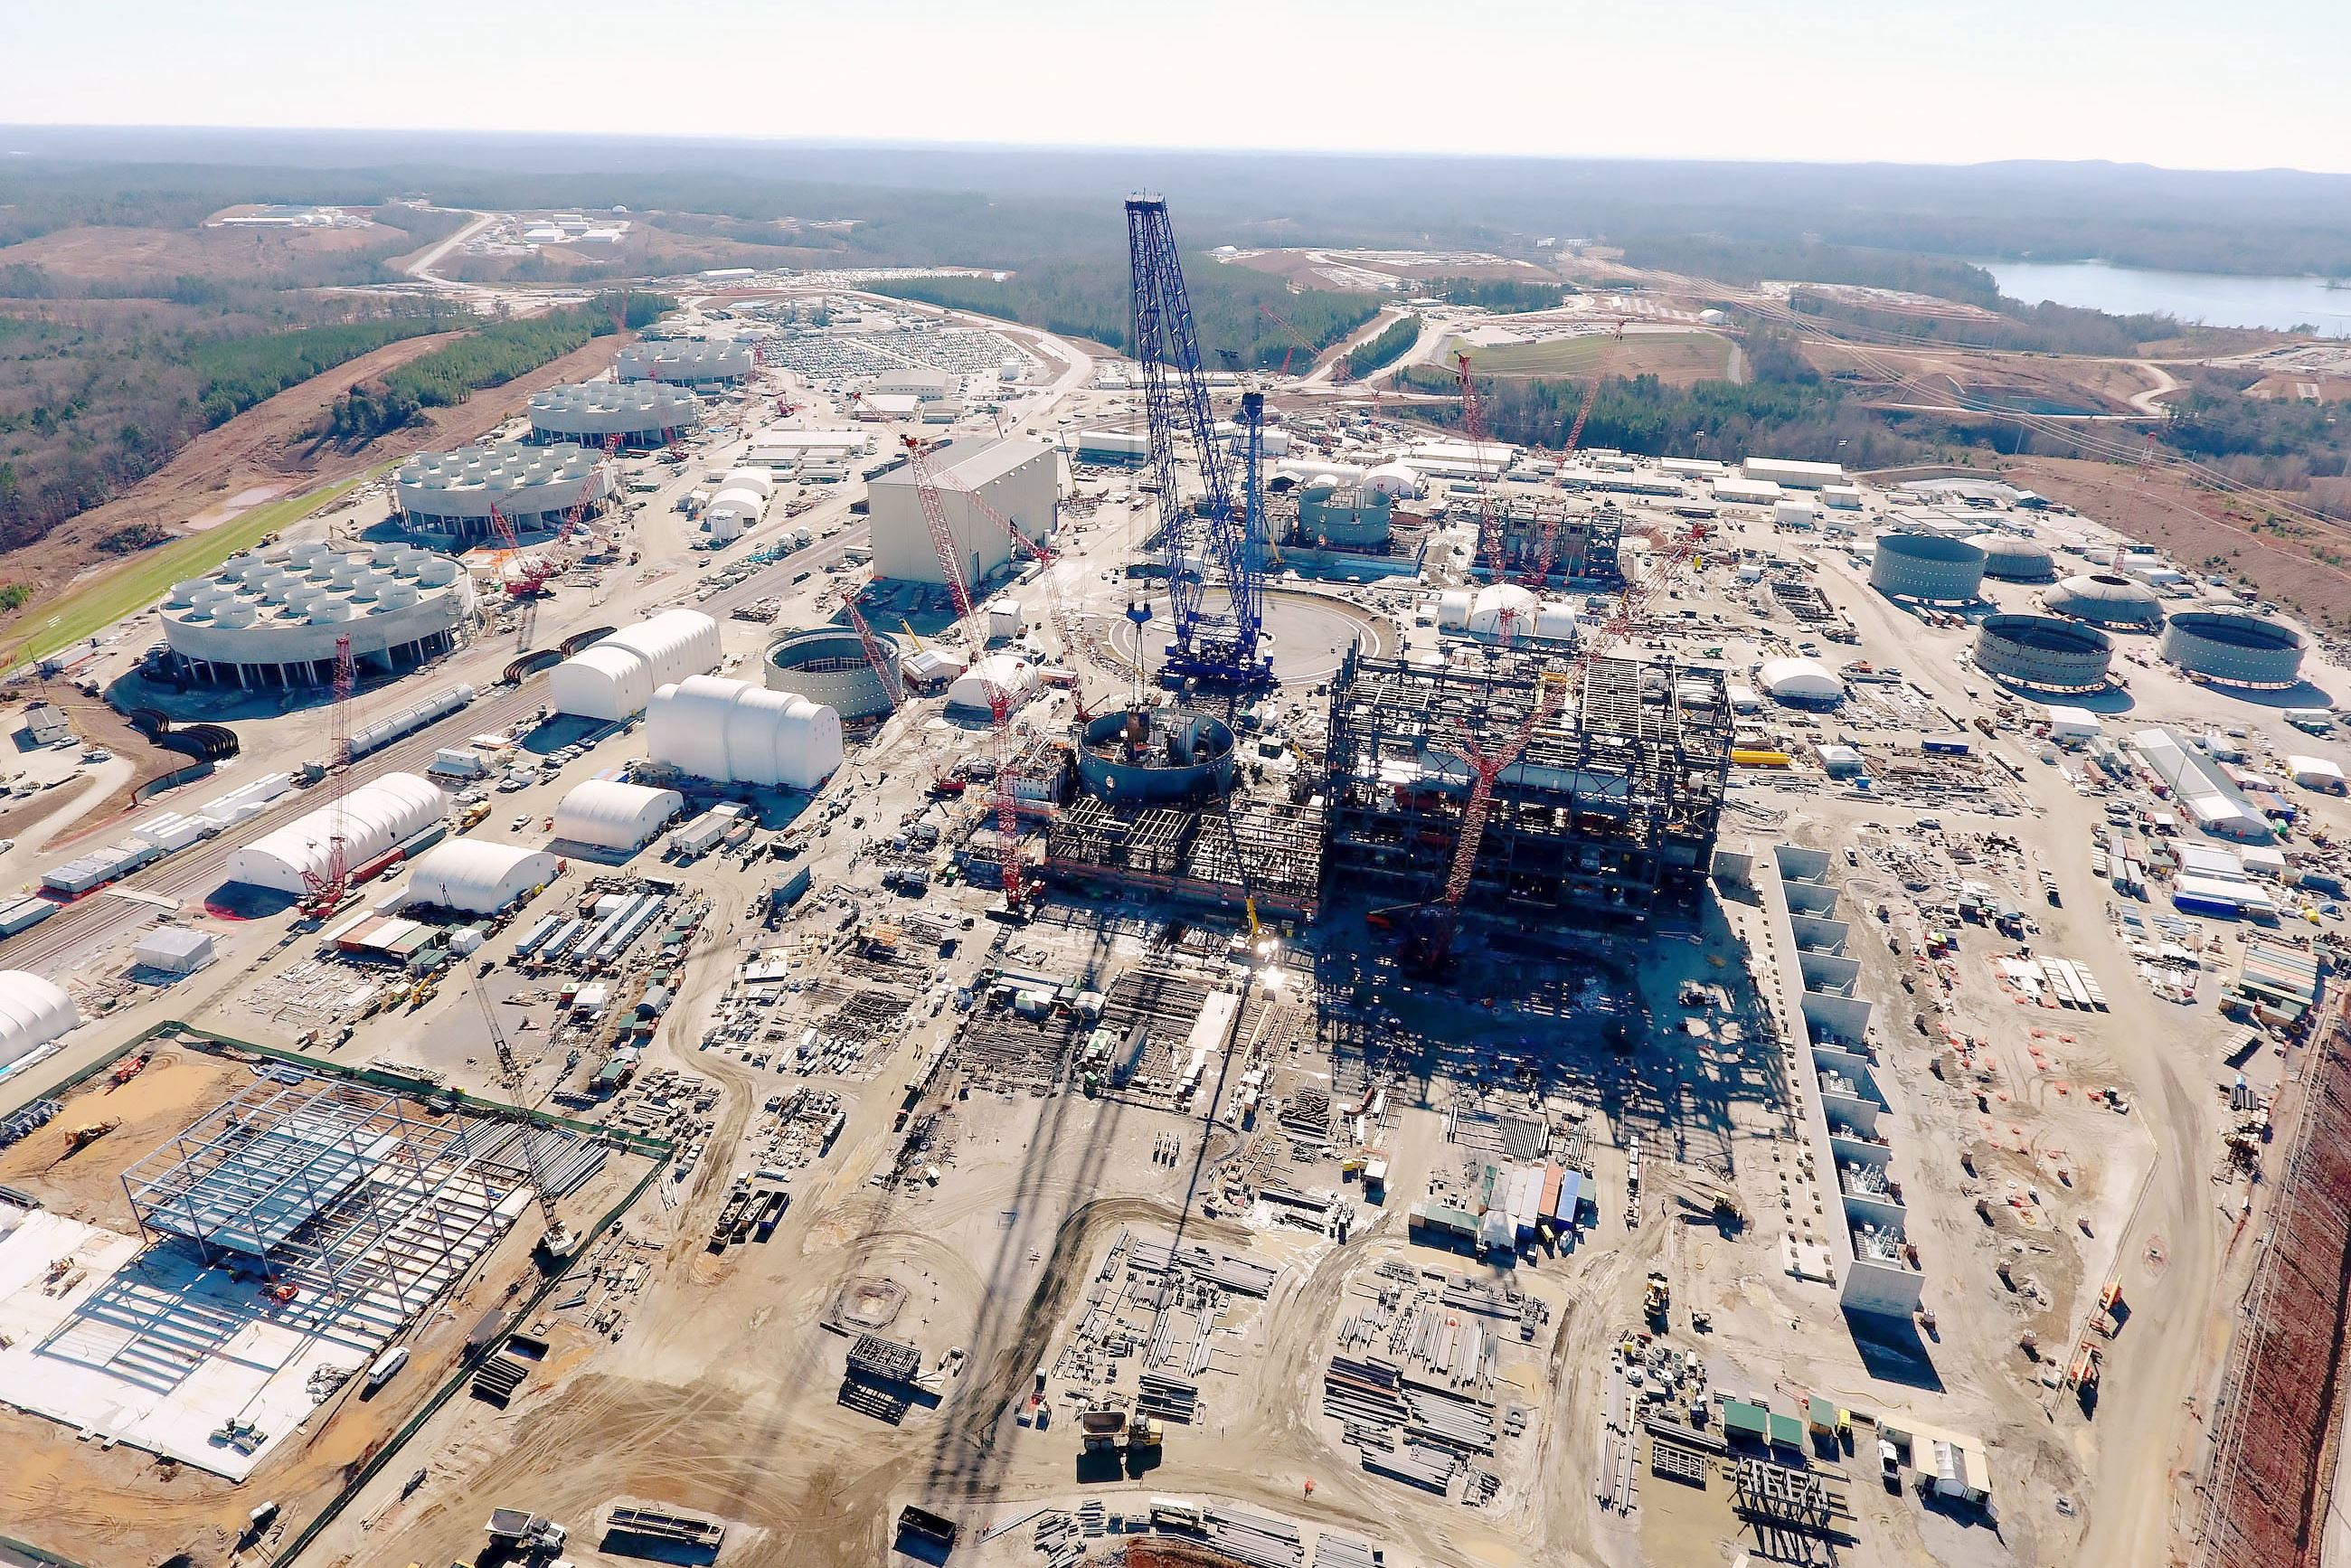 westinghouse-10 Construction at the V.C. Summer Nuclear Station in Jenkinsville, S.C. where Westinghouse Electric Co. is building two AP1000 reactors. The work is behind schedule and over budget.